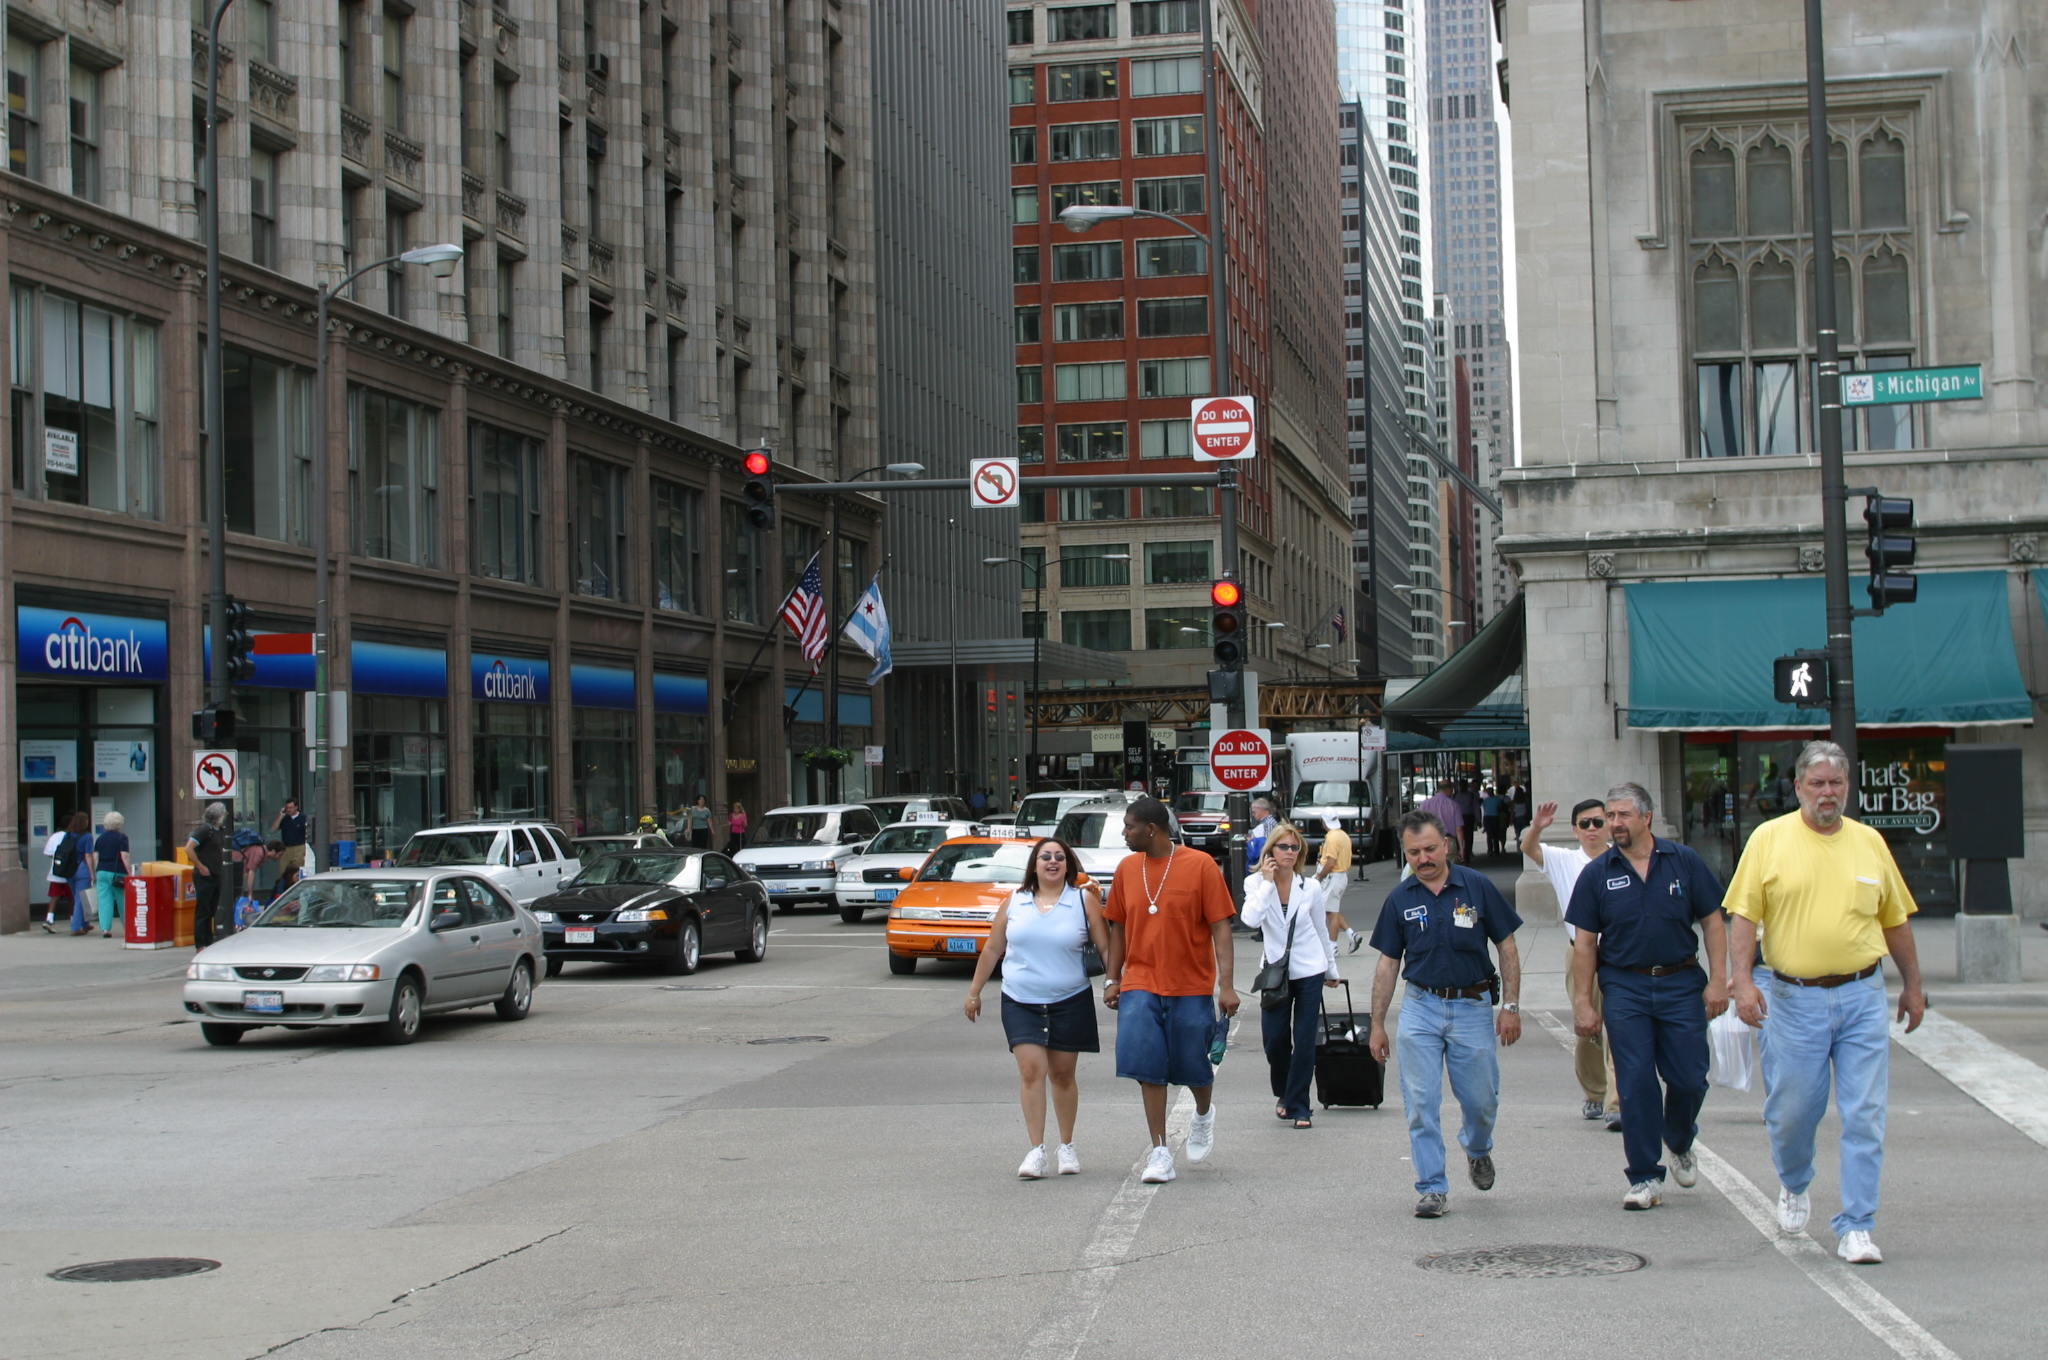 pin downtown chicago map 2012 of illinois on